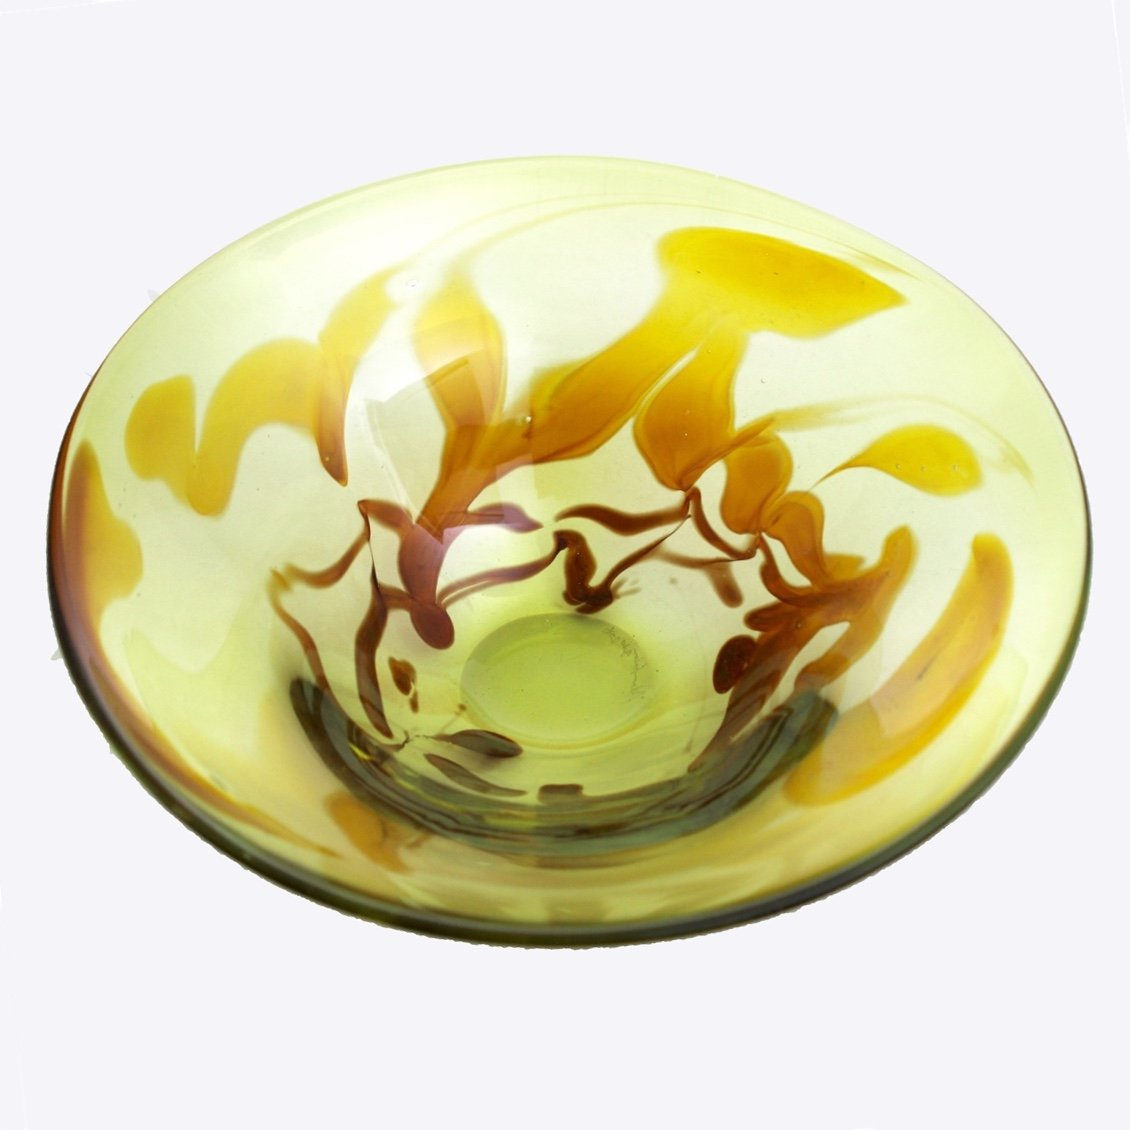 Lime and Topaz Feather Bowl Handblown Glass by Adam Aaronson